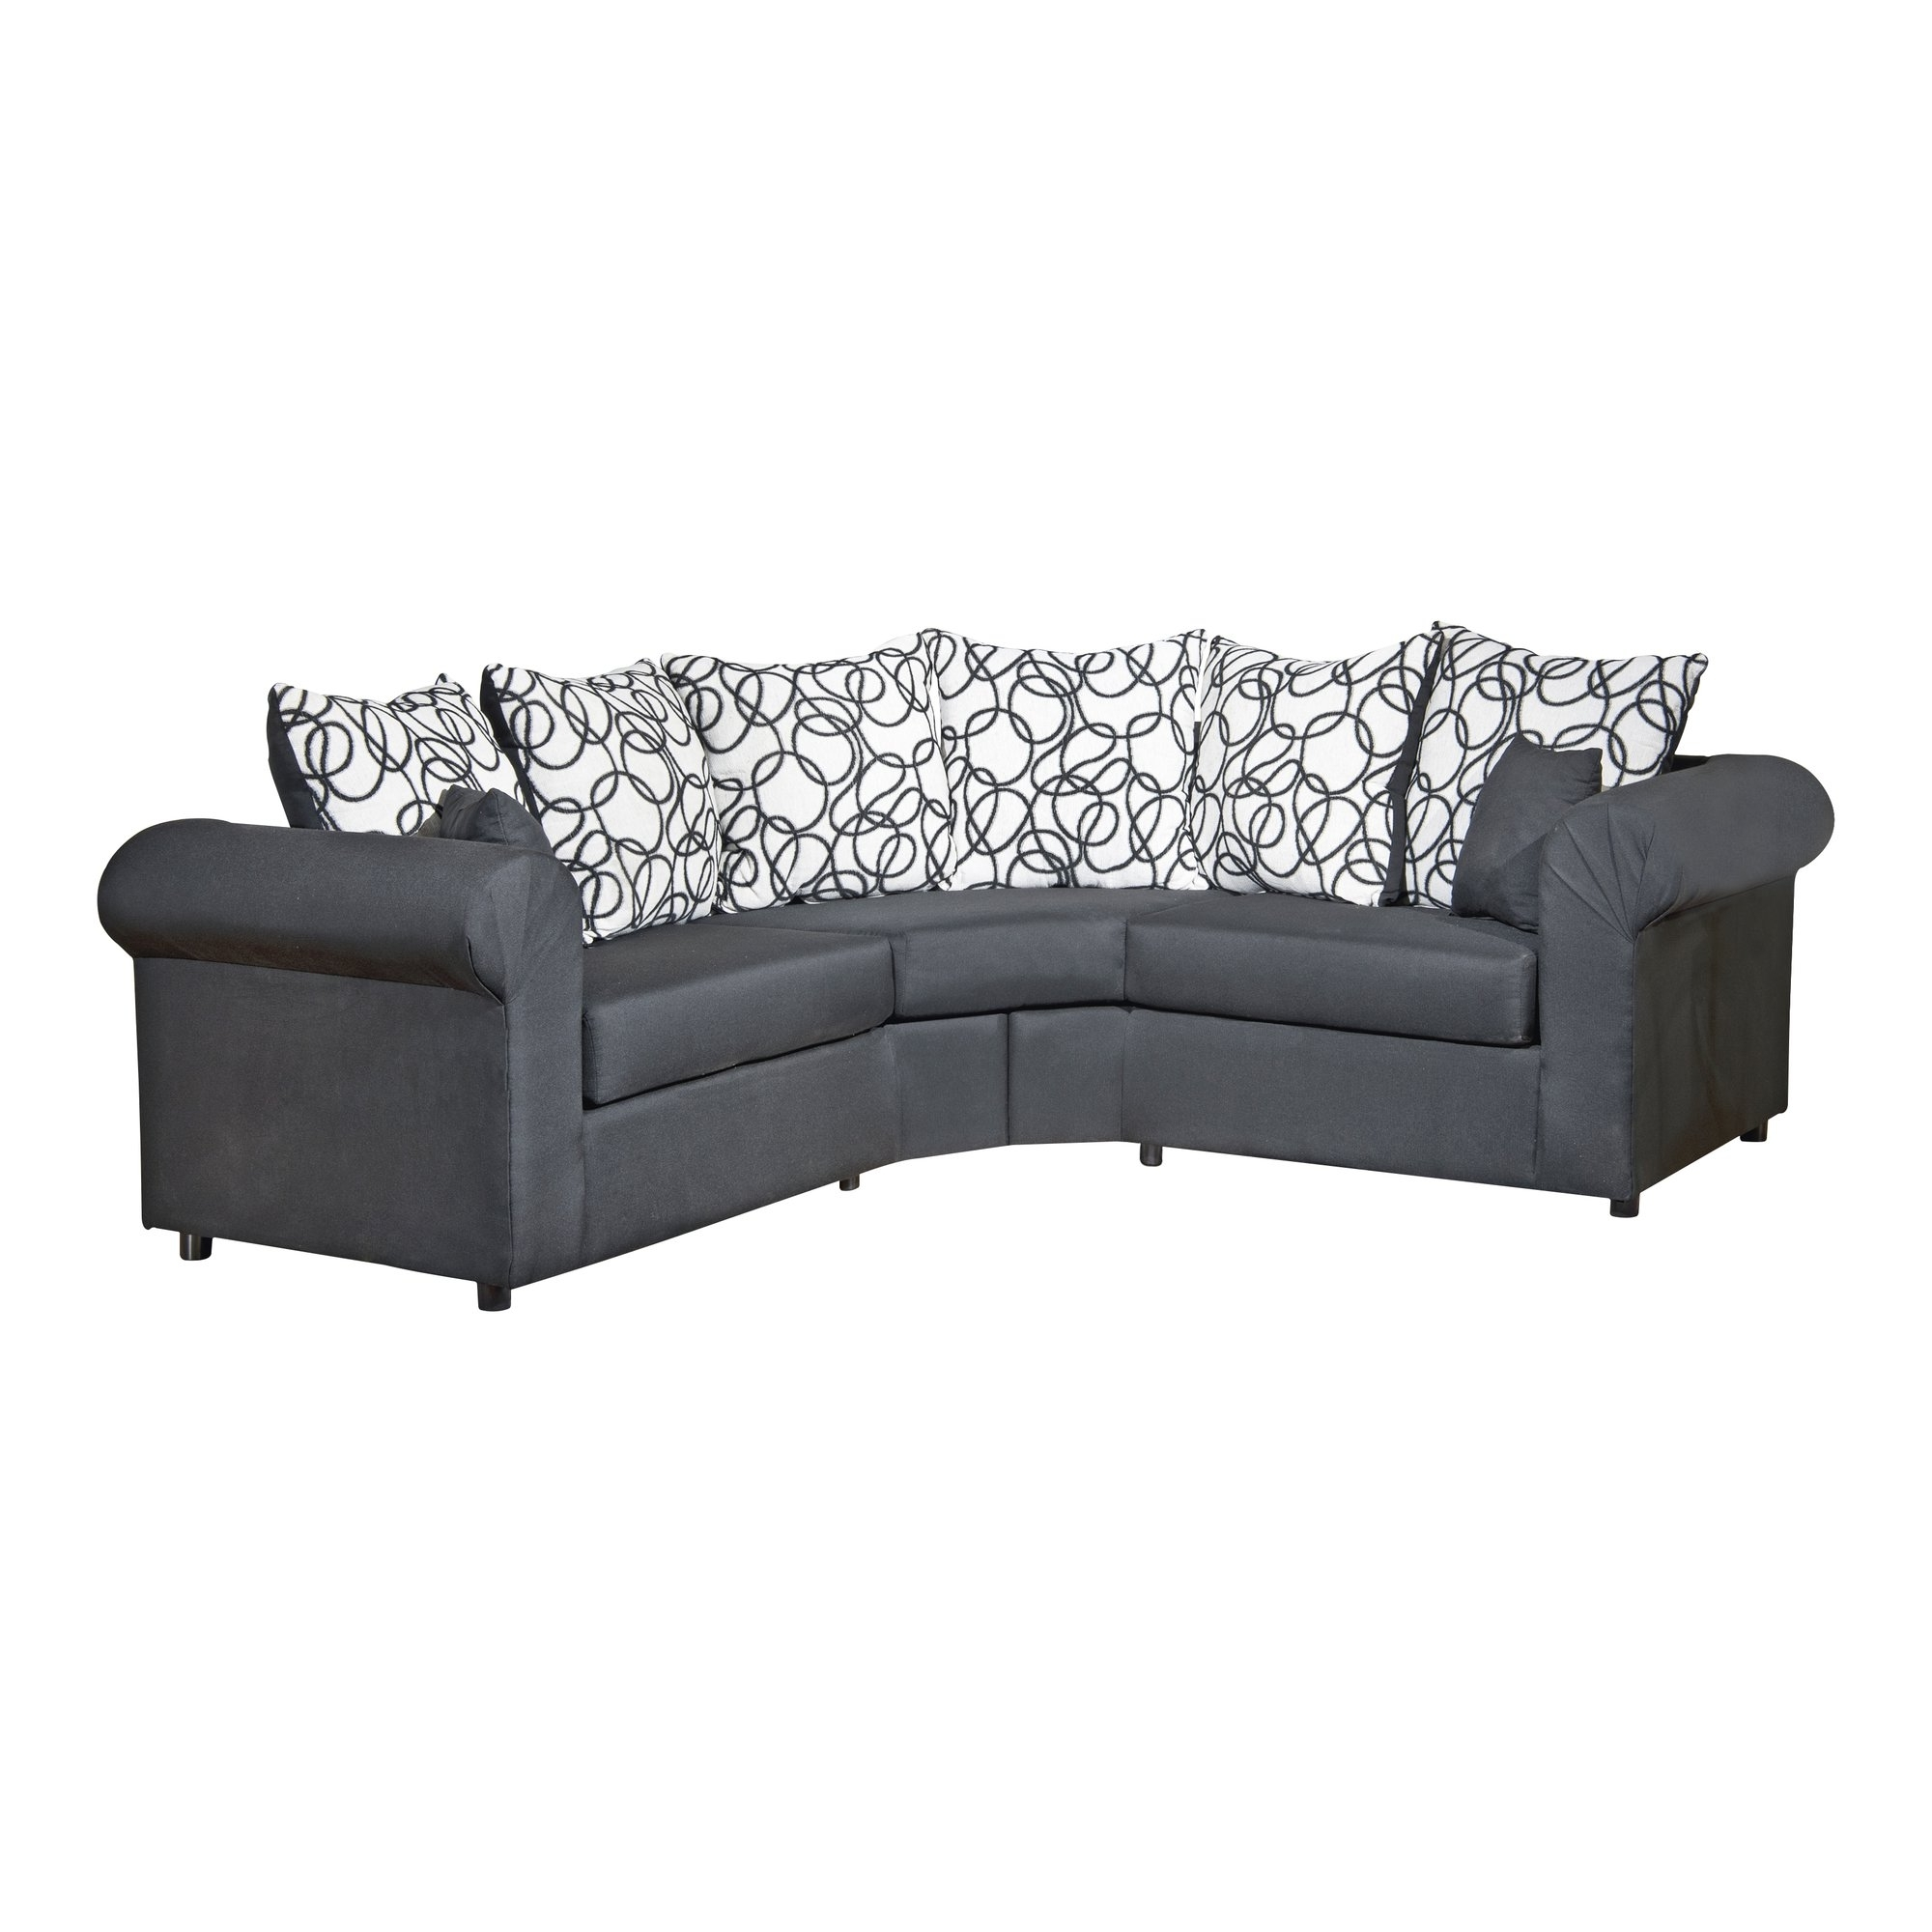 Quebec Sectional Sofas In Widely Used Modern Light Grey Fabric Sectional Sofa Leather Mason Divani Casa (View 14 of 20)